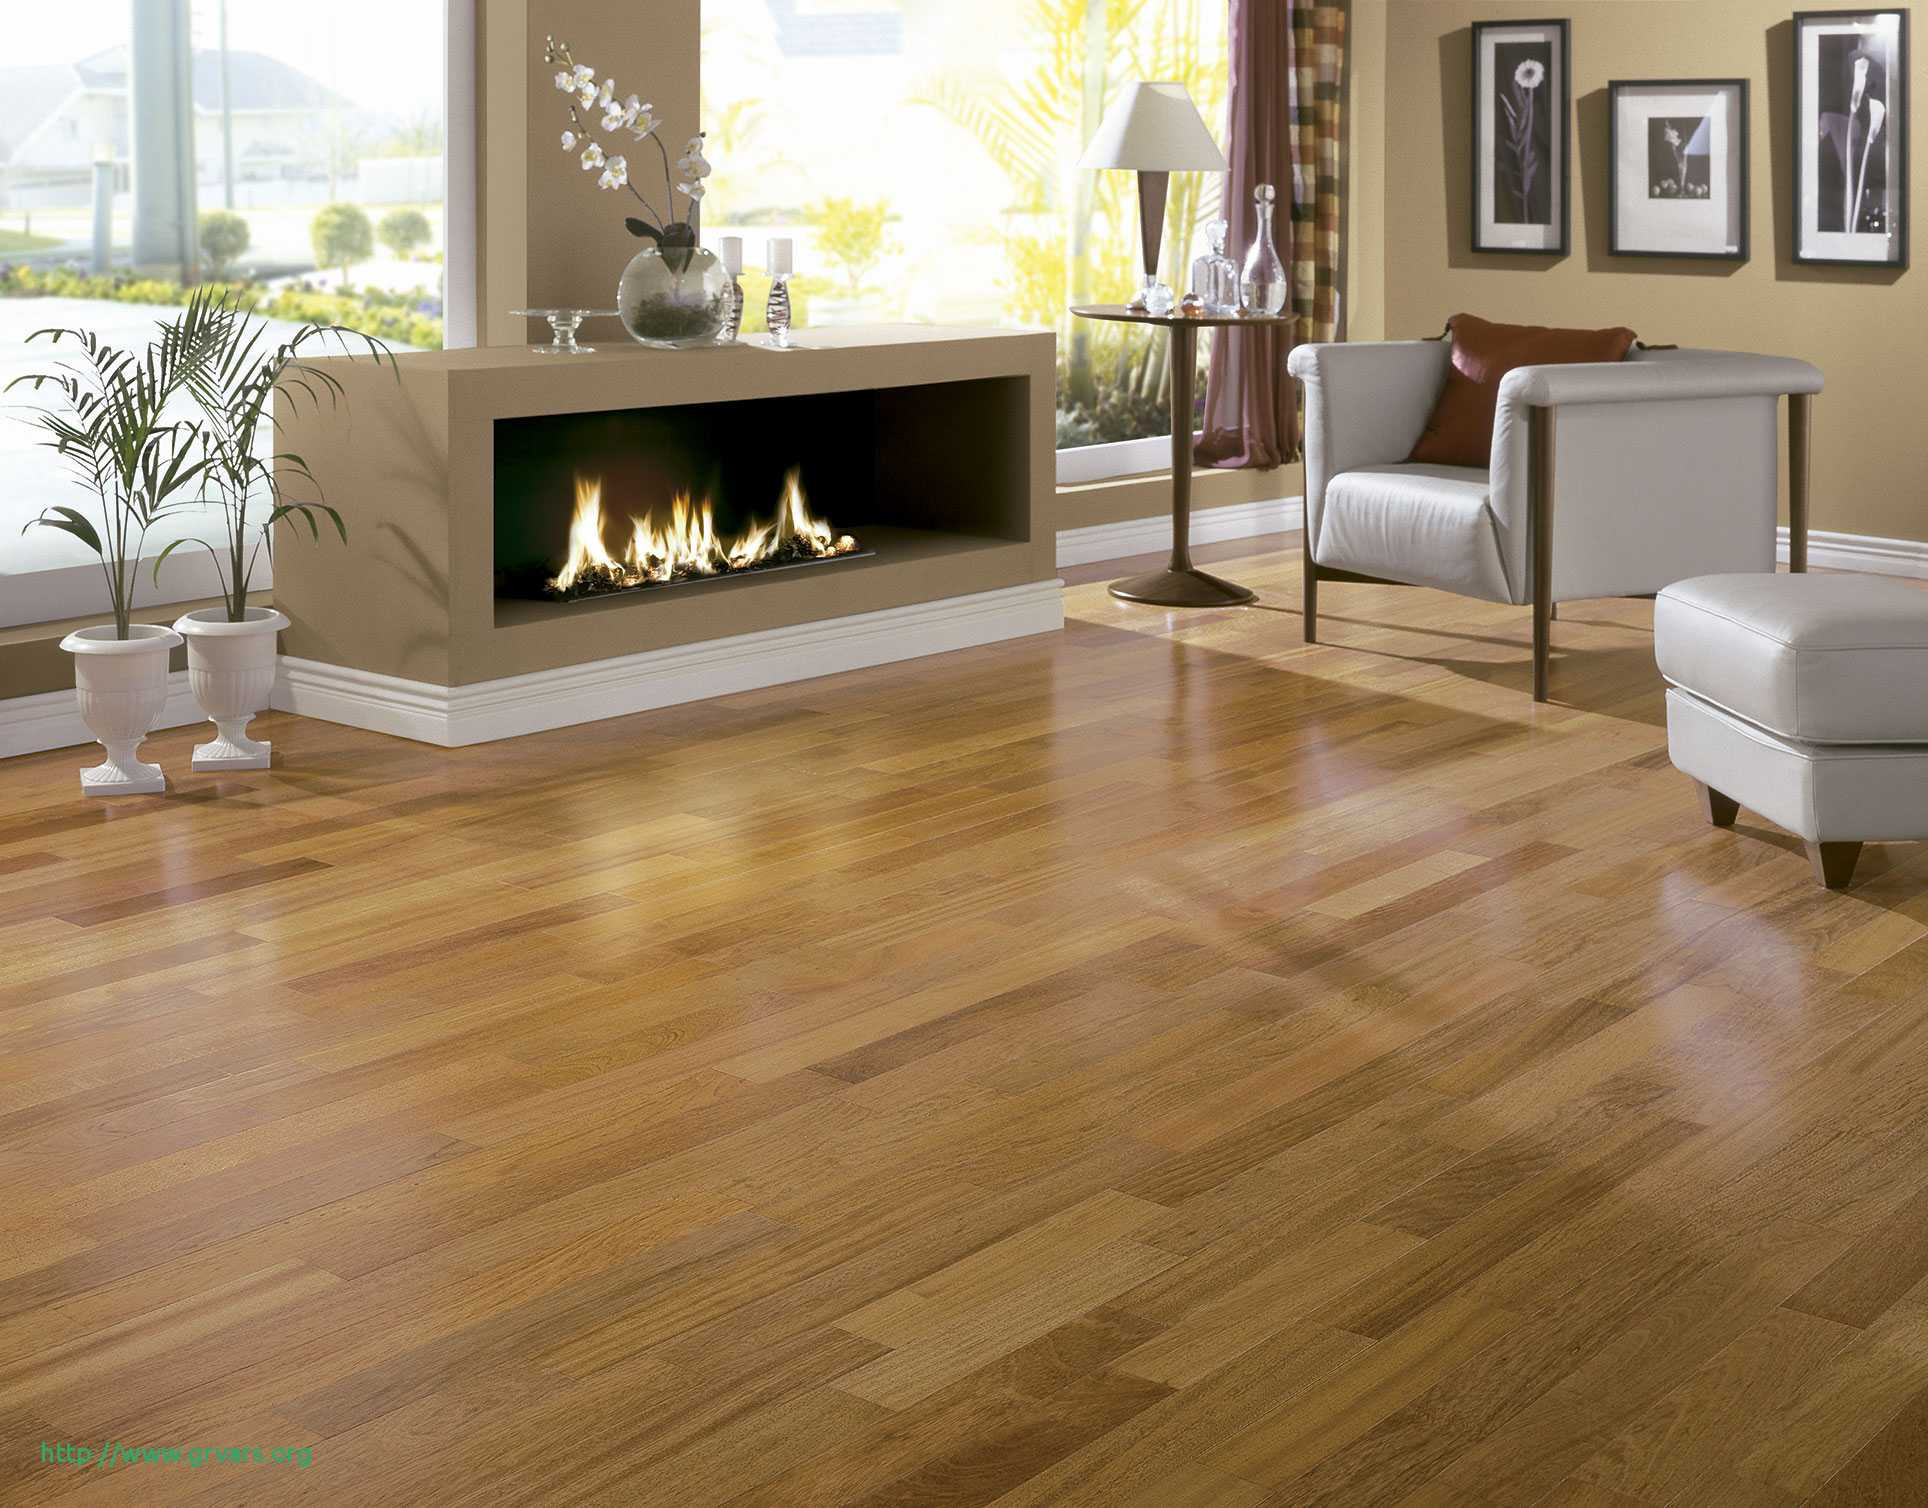 images of bedrooms with hardwood floors of fore wood floors impressionnant bedrooms with hardwood floors in fore wood floors charmant engaging discount hardwood flooring 5 where to inspi